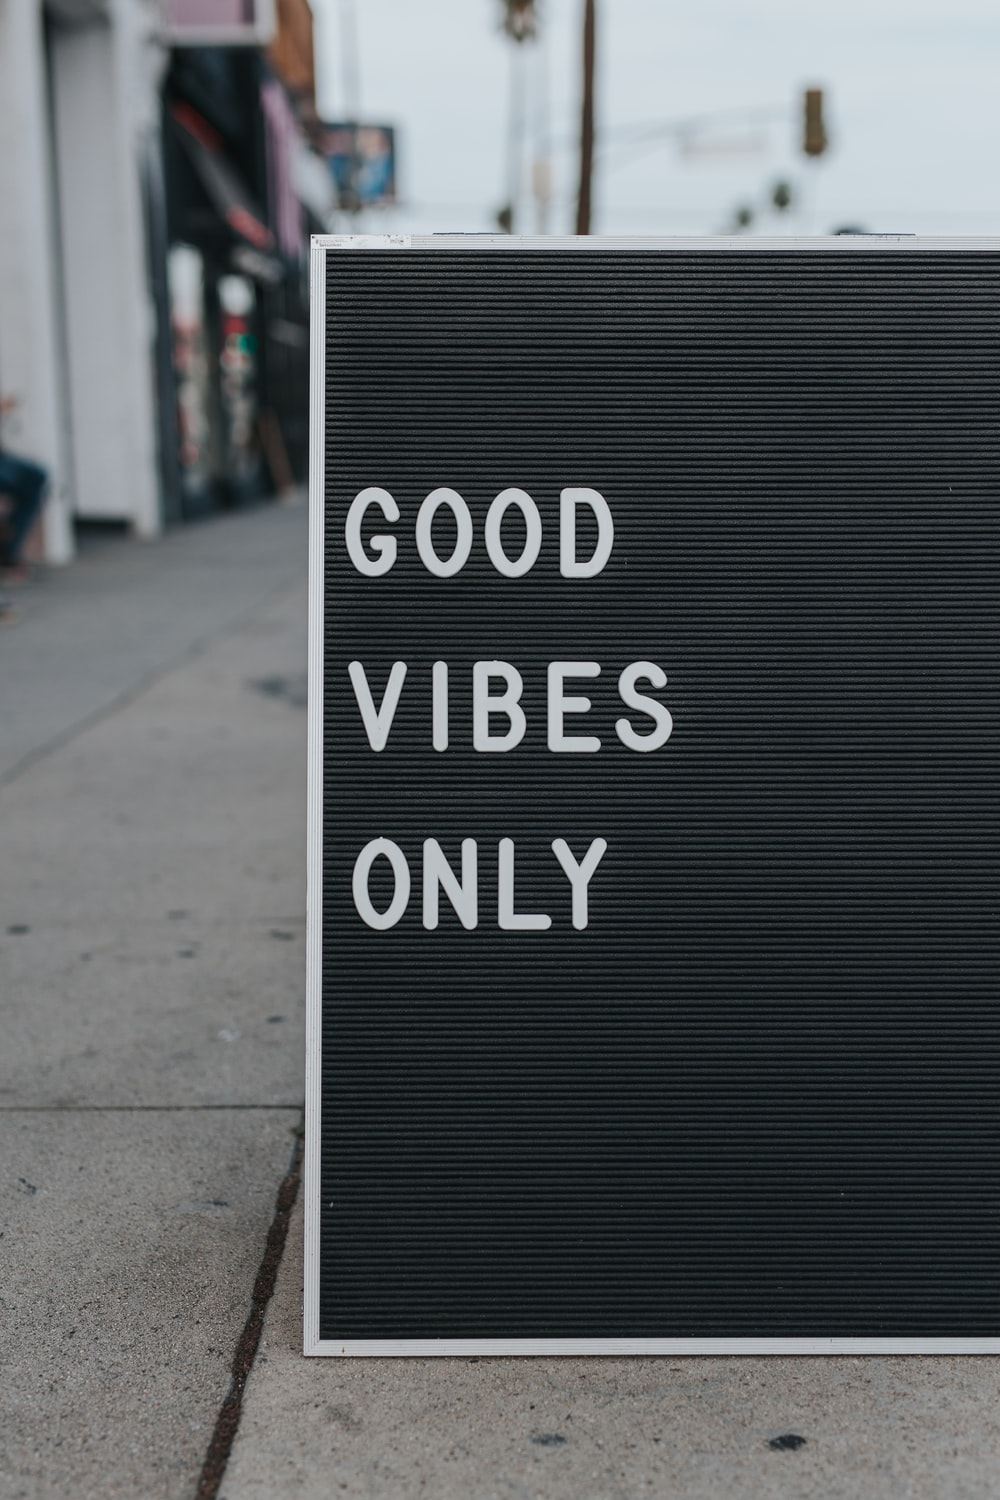 500 Good Vibes Only Pictures Hd Download Free Images On